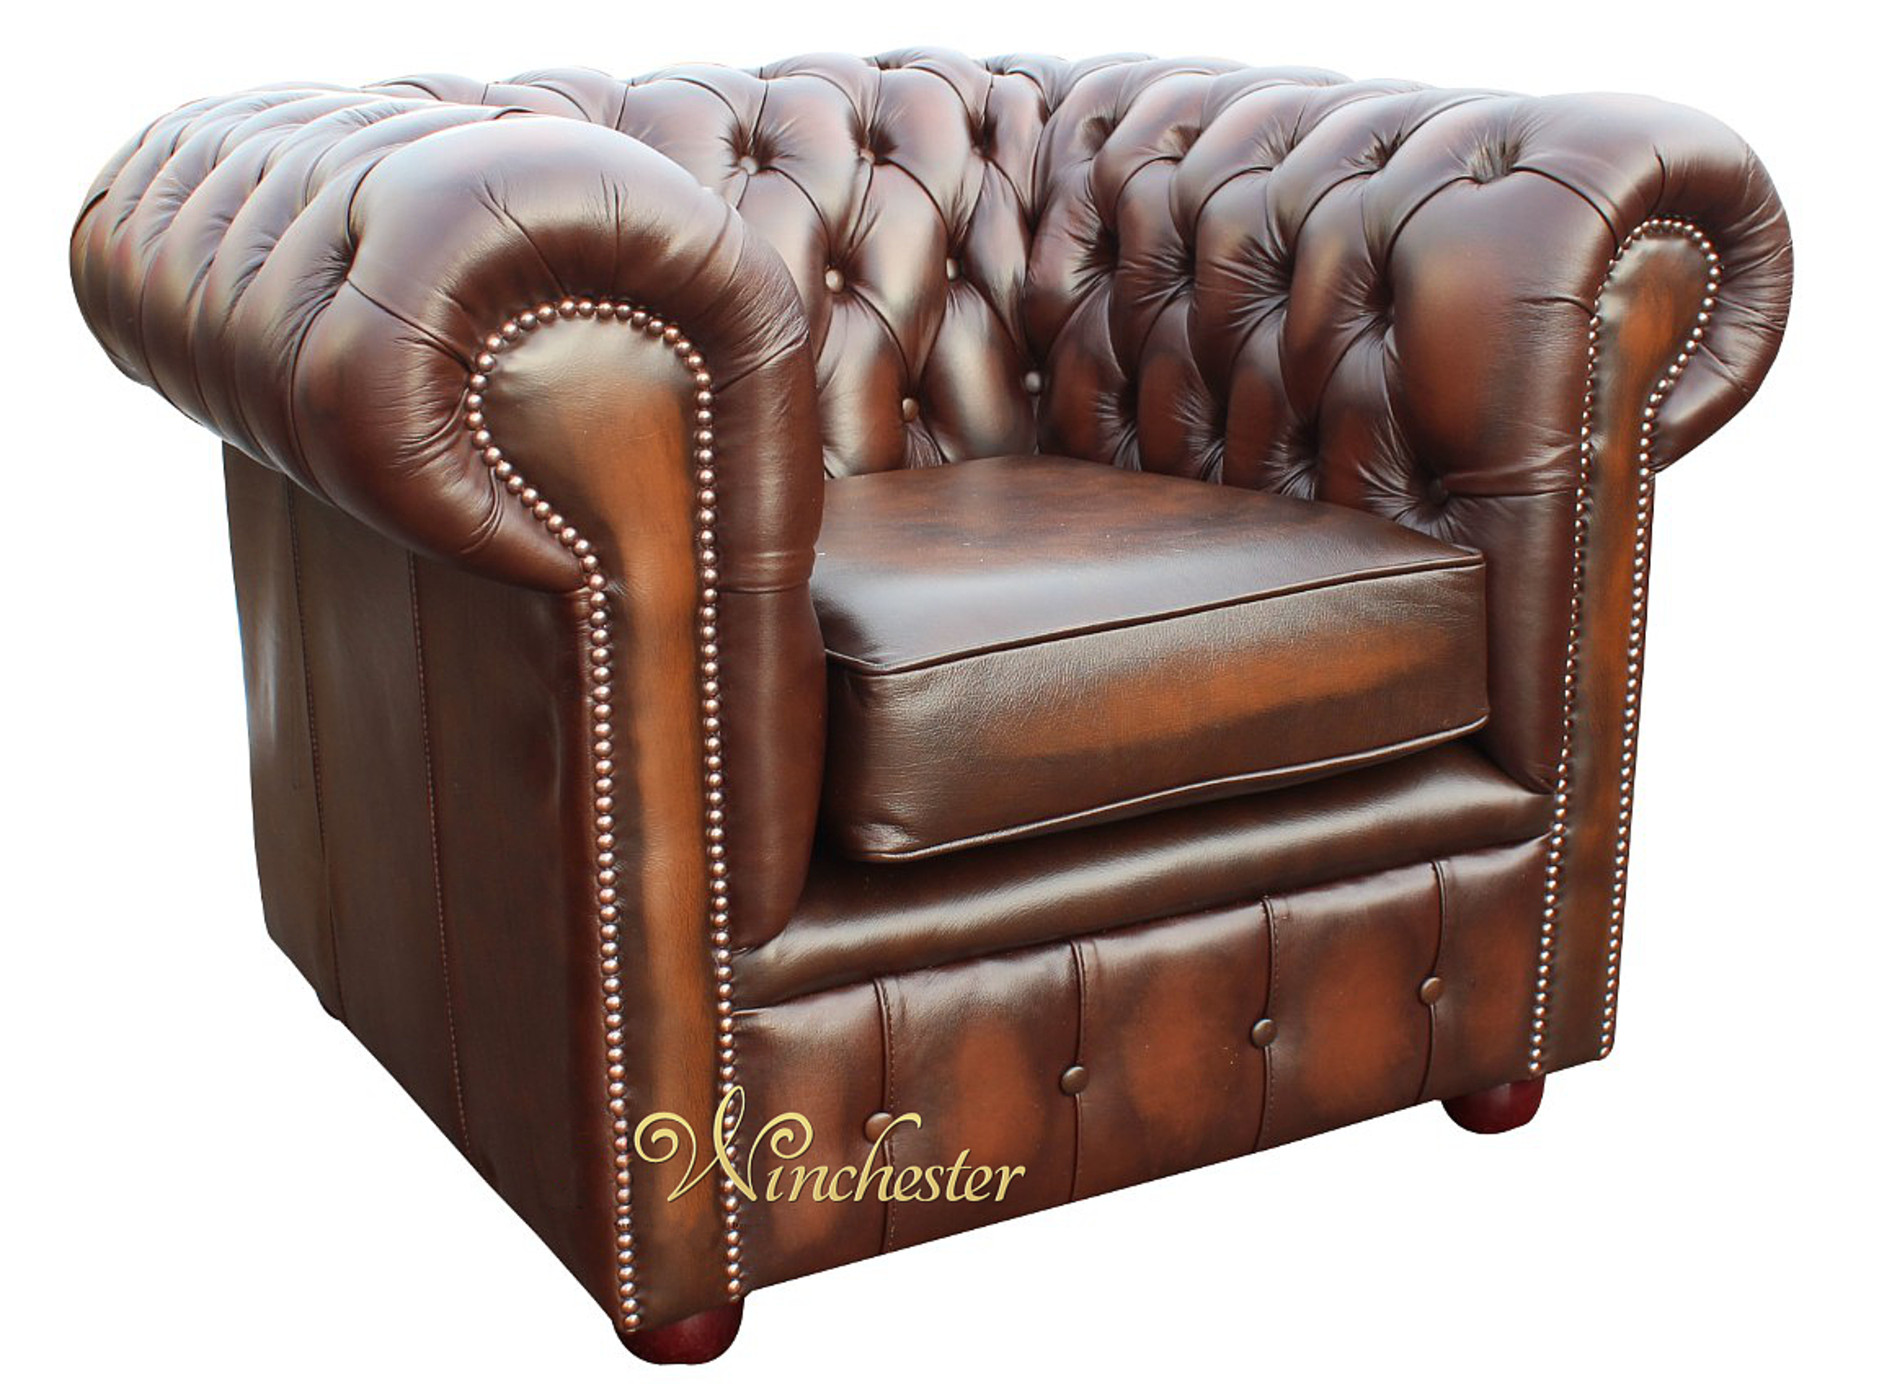 Chesterfield London 1 Seater Club Chair Antique Brown Wc